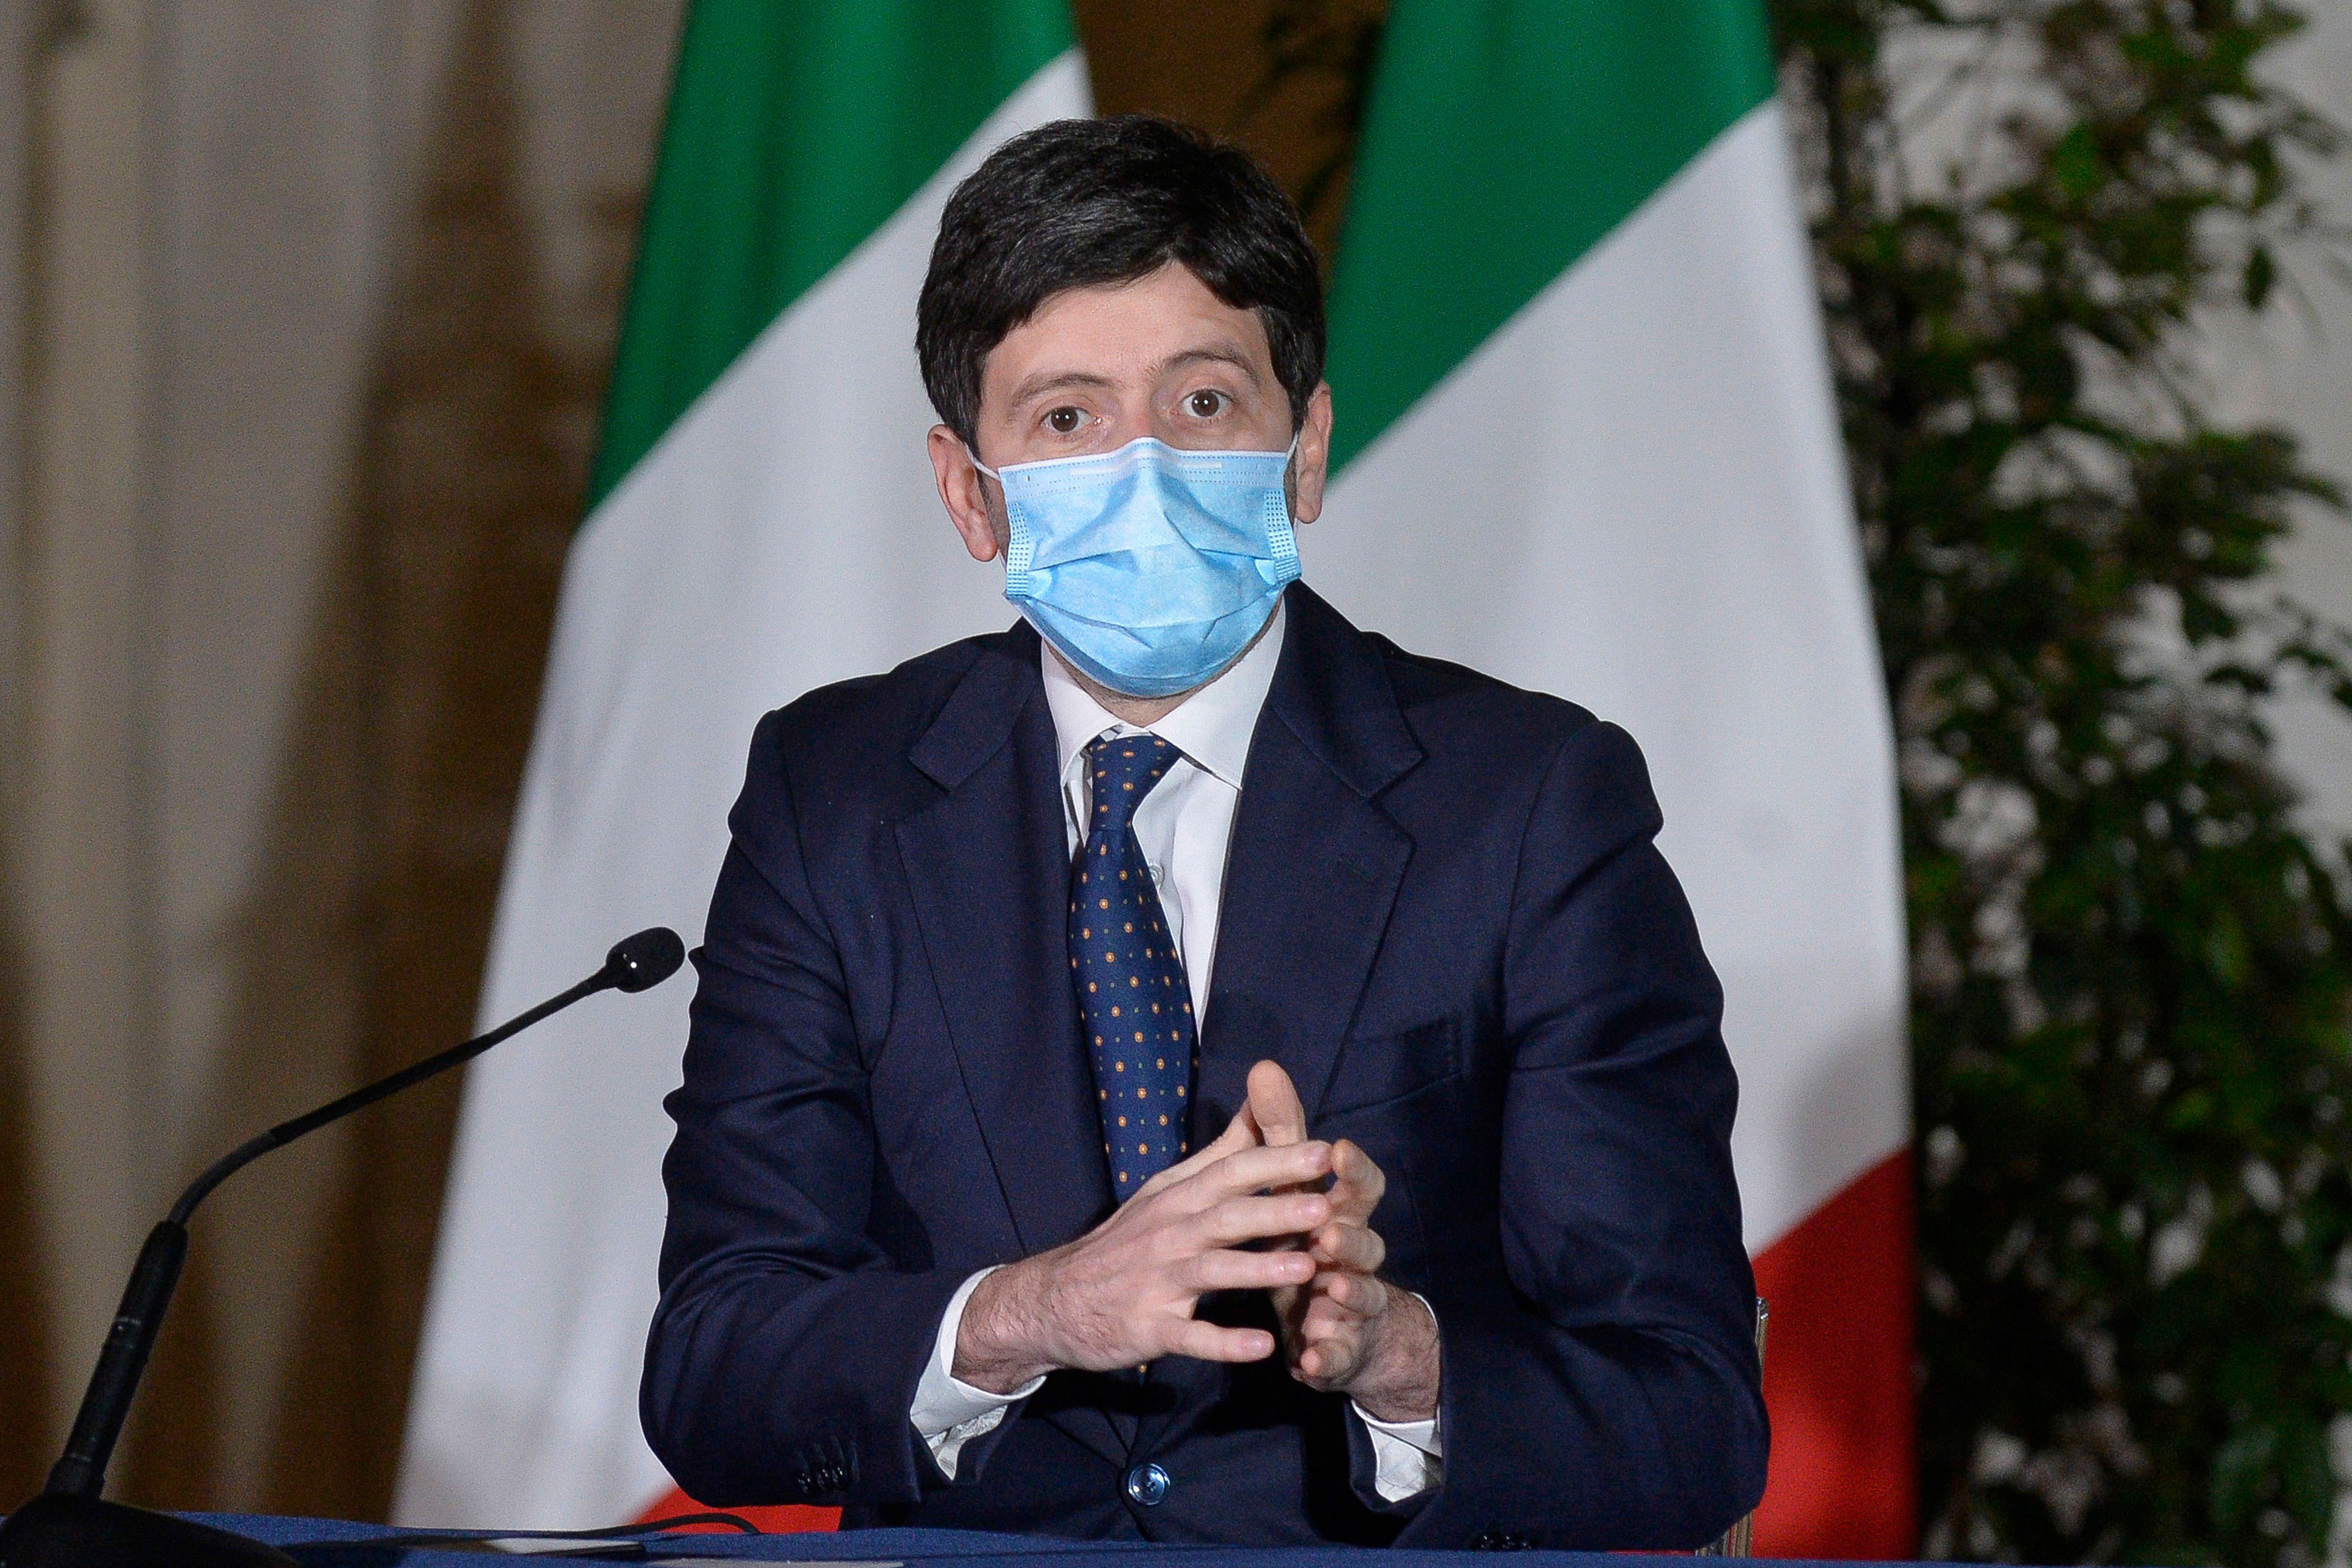 Italy's Health Minister Roberto Speranza speaks at a press conference in Rome on March 2.